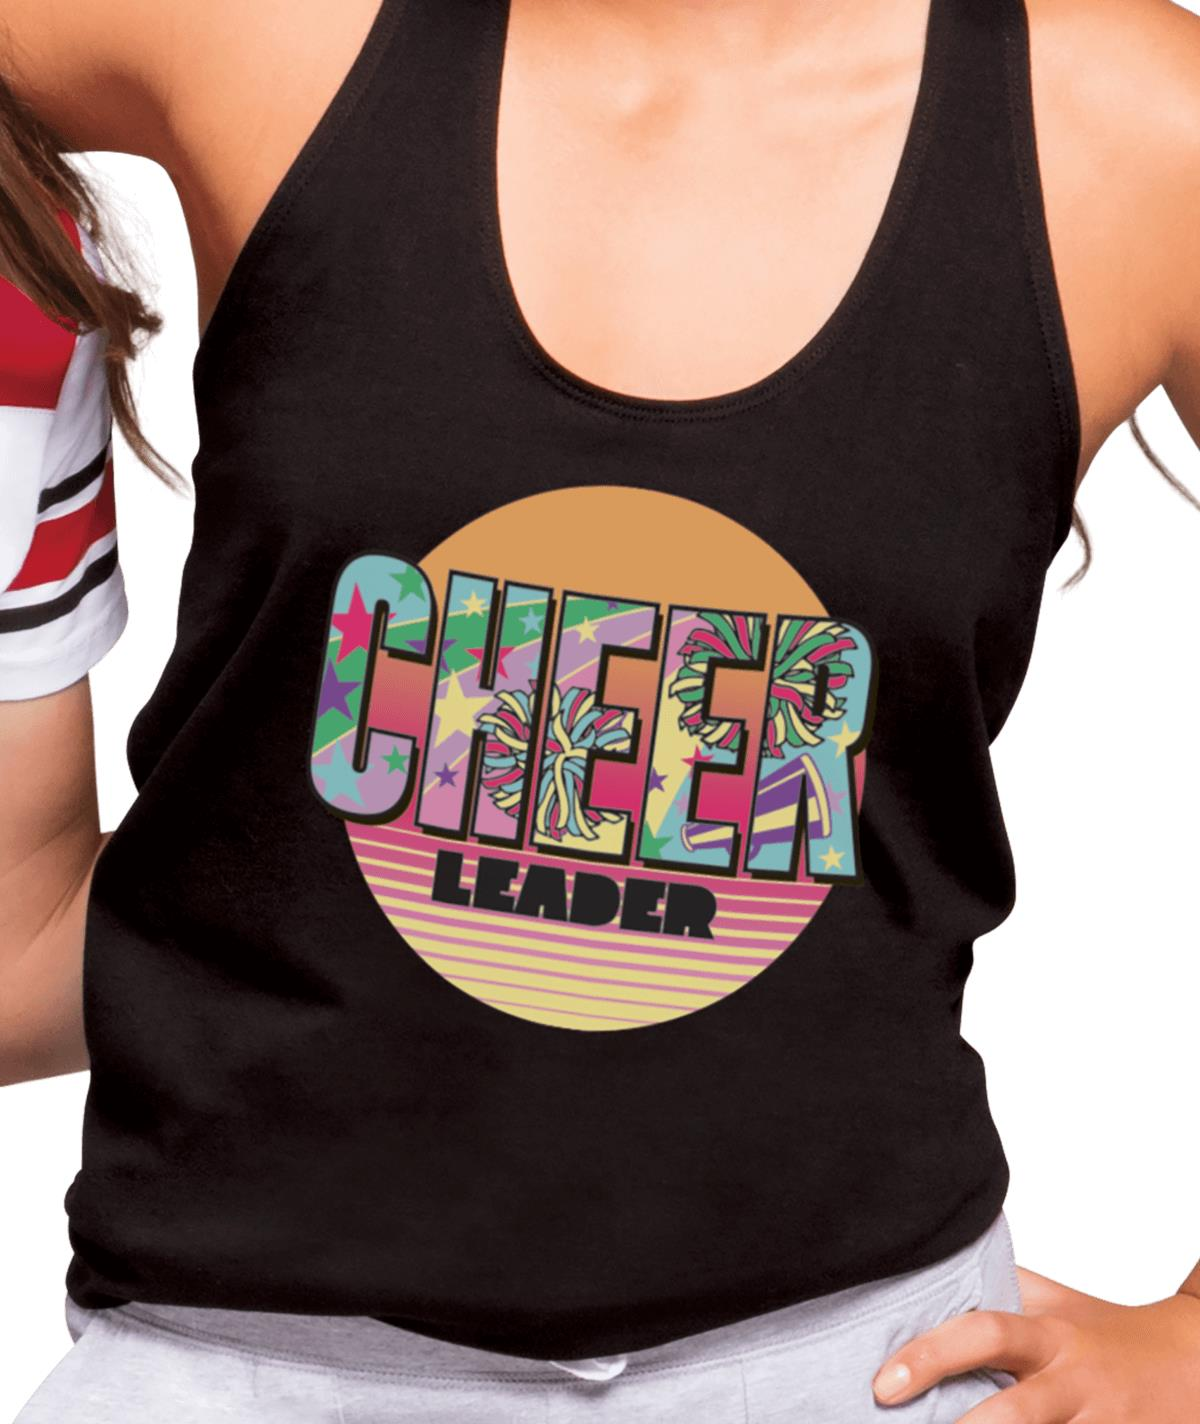 Chasse Cheer Sunset Graphic Tank